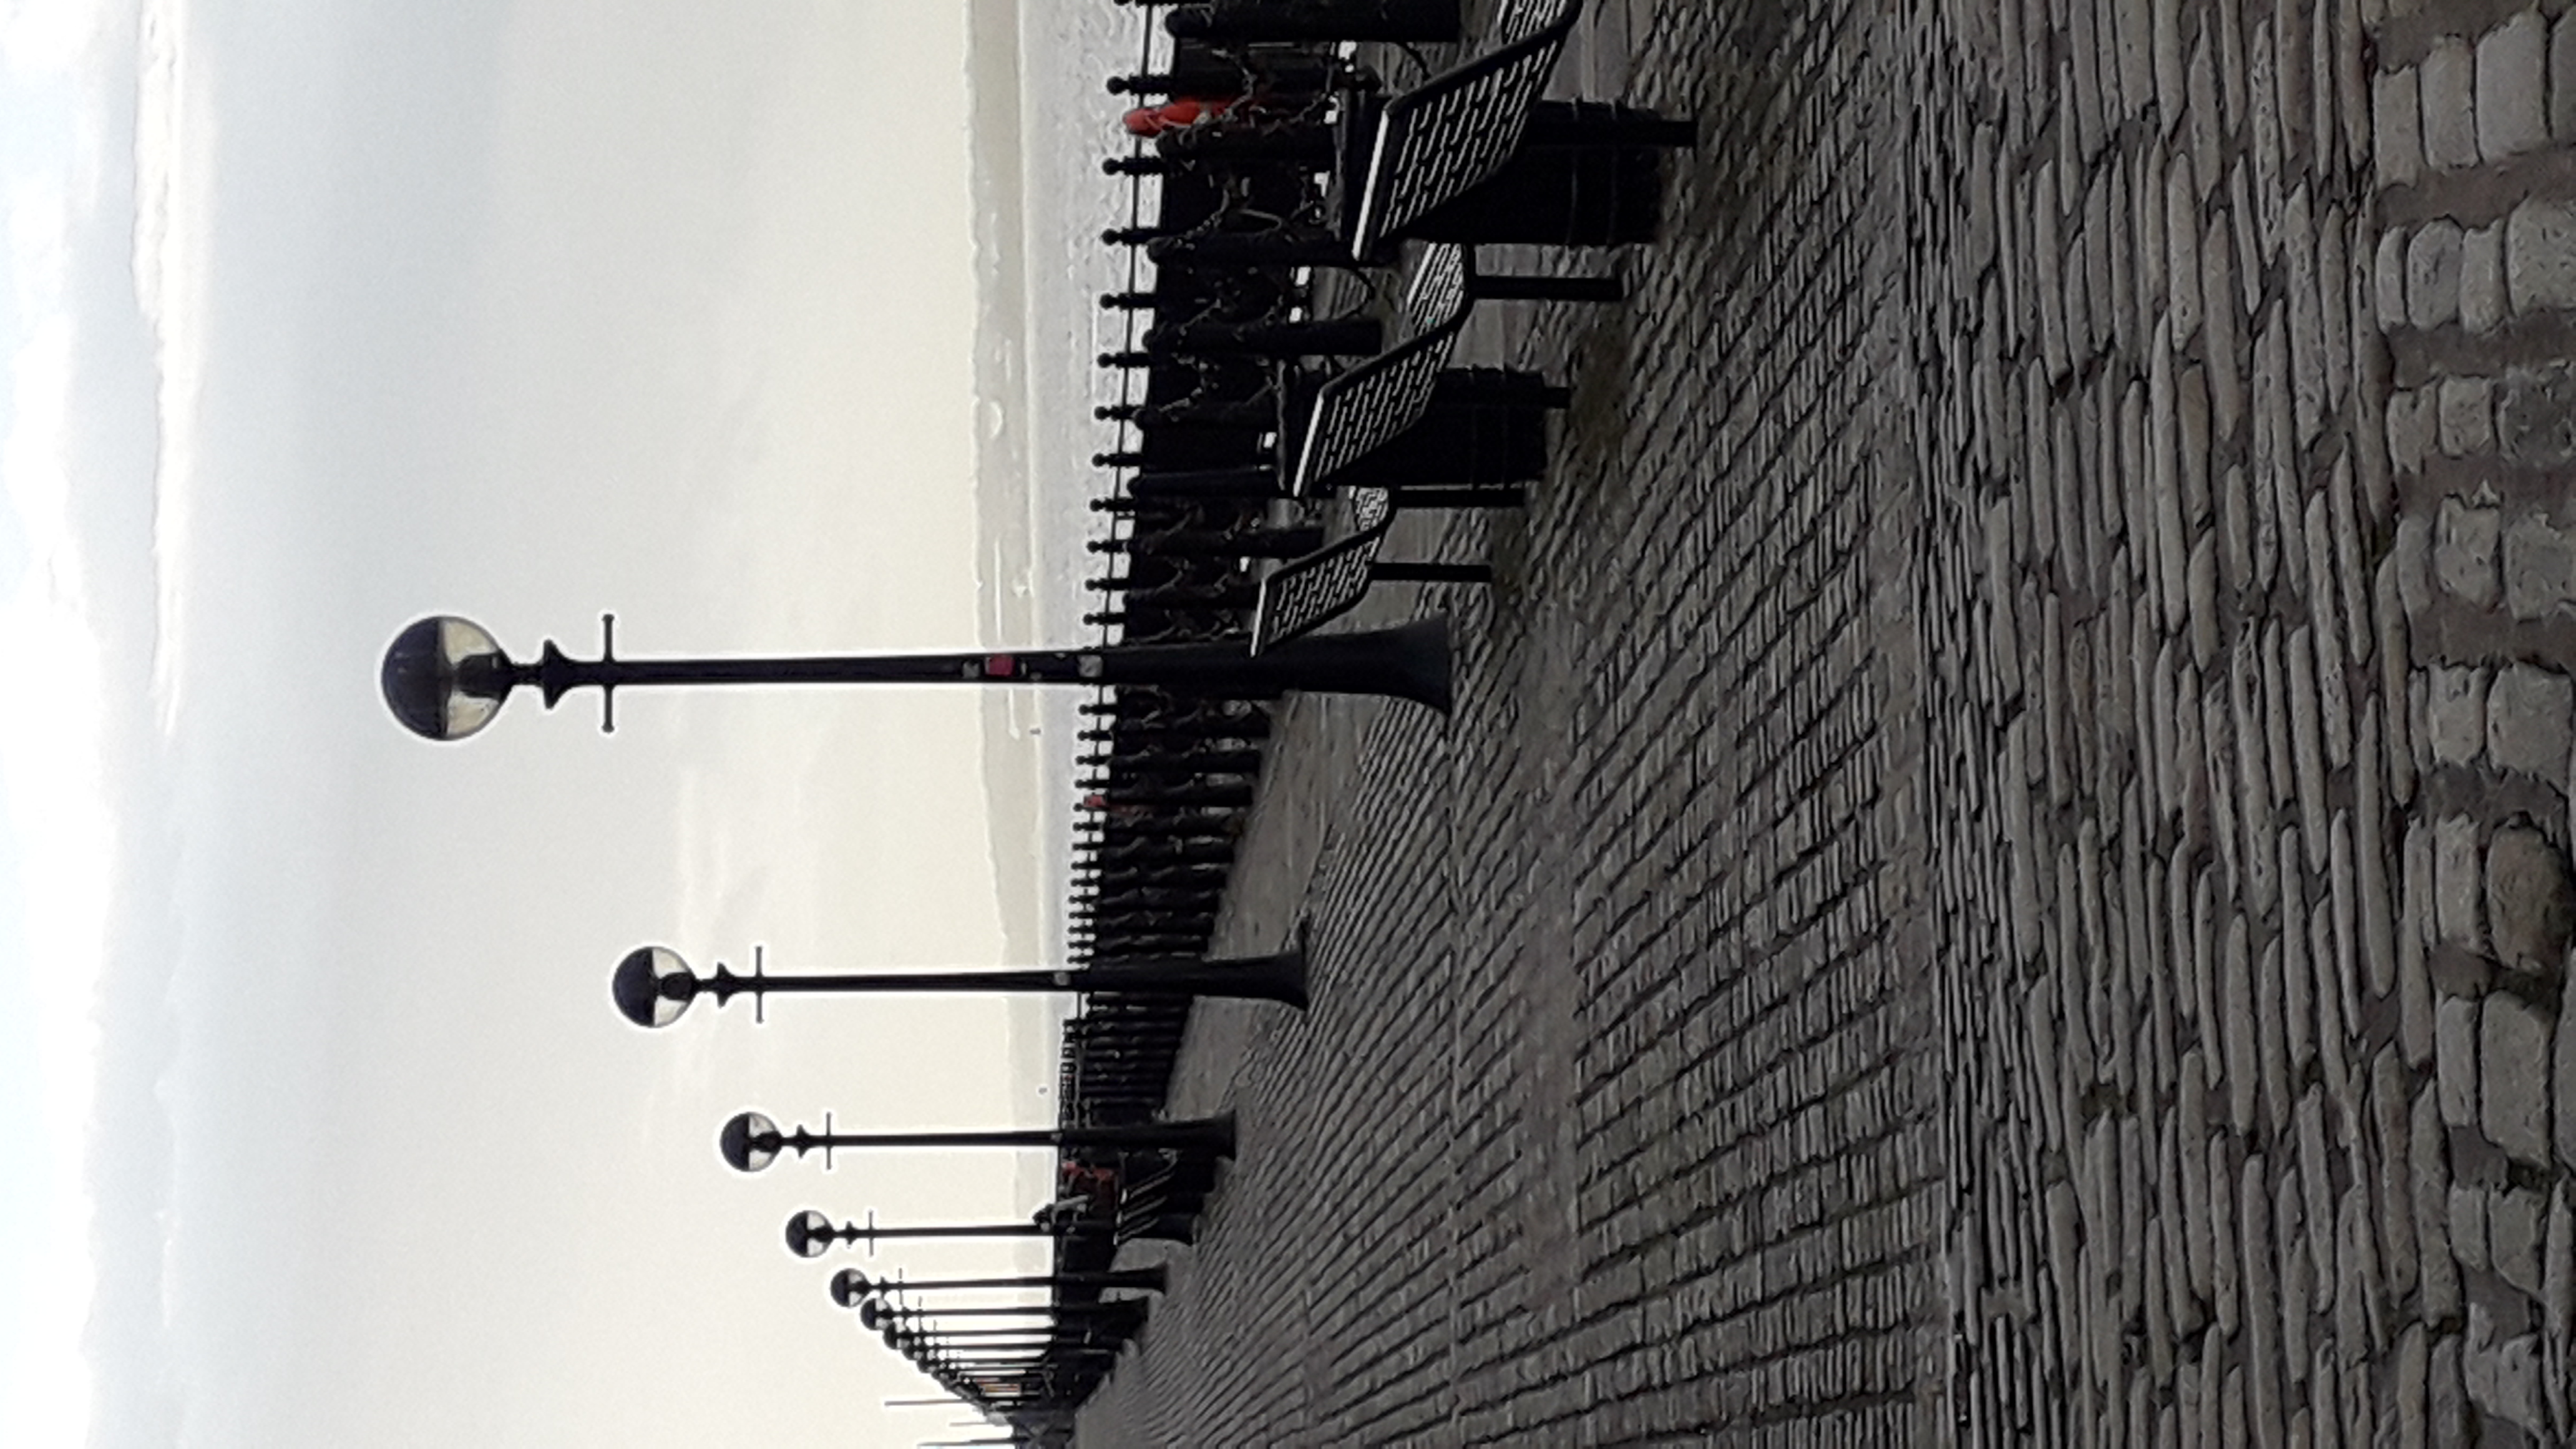 Liverpool waterfront Oct. 2019